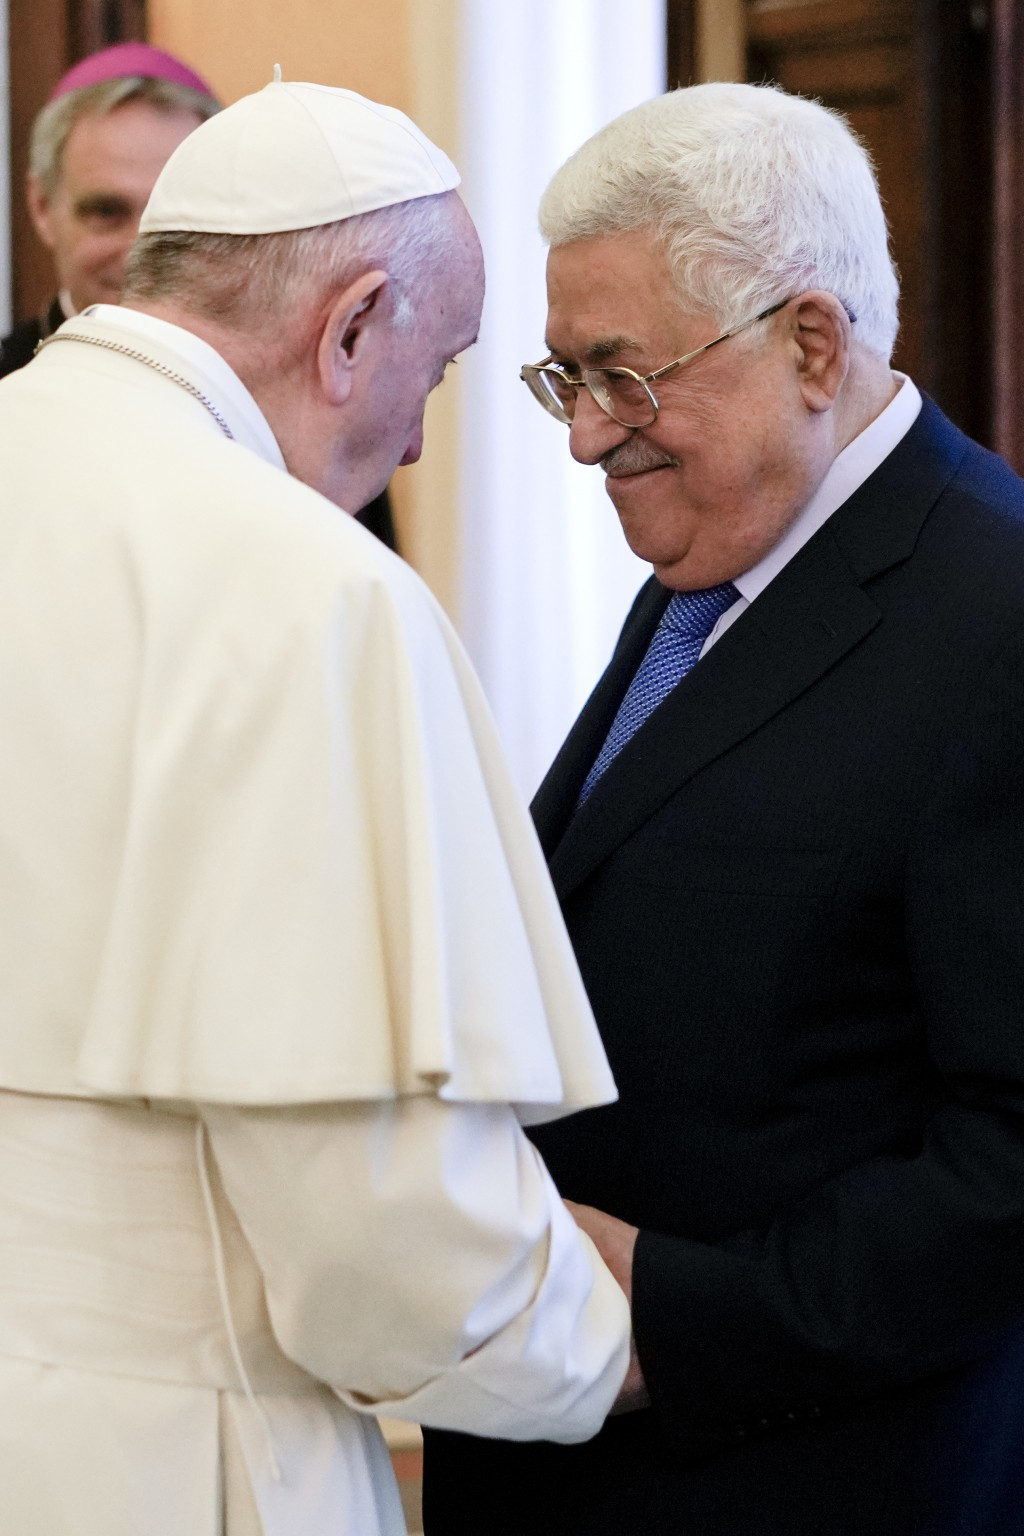 Pope Francis is greeted by Palestinian President Mahmoud Abbas at the end of a private audience at the Vatican, Monday, Dec. 3, 2018. (AP Photo/Andrew